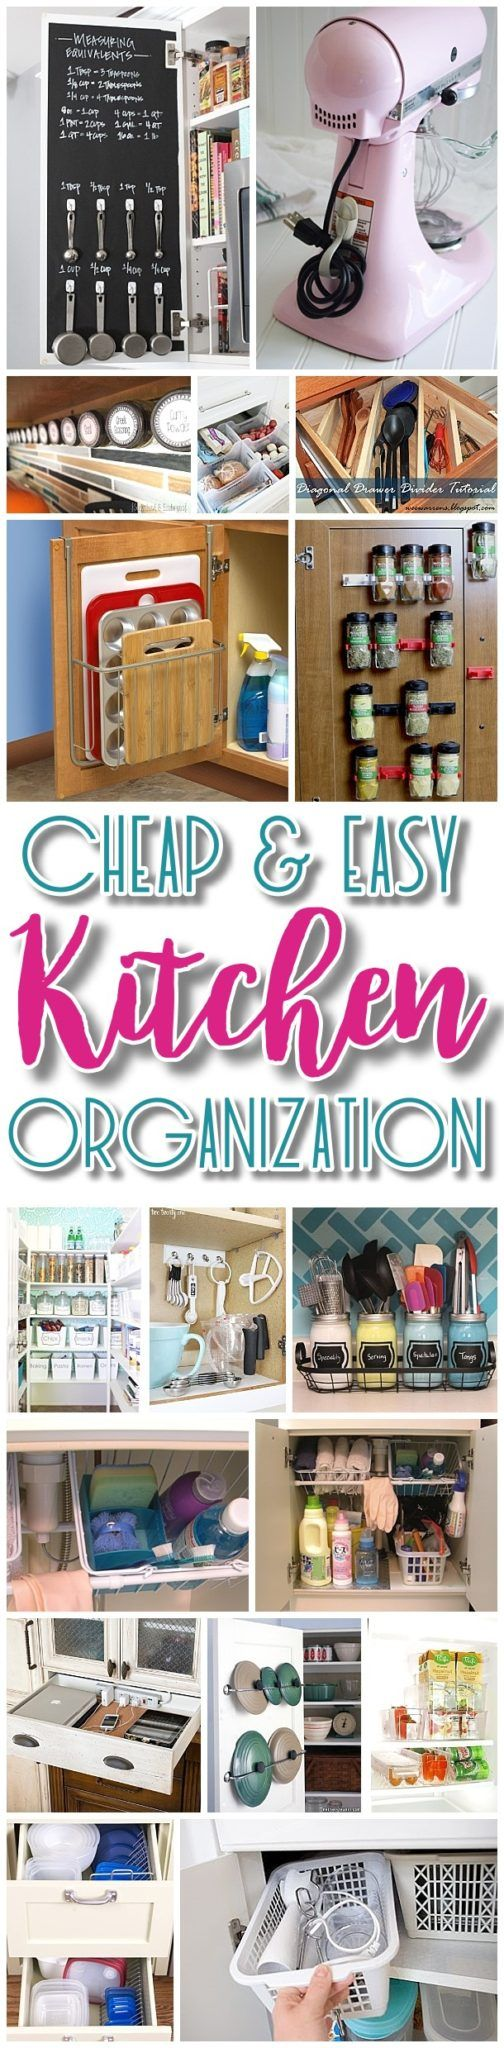 easy budget friendly ways to organize your kitchen {quick tips